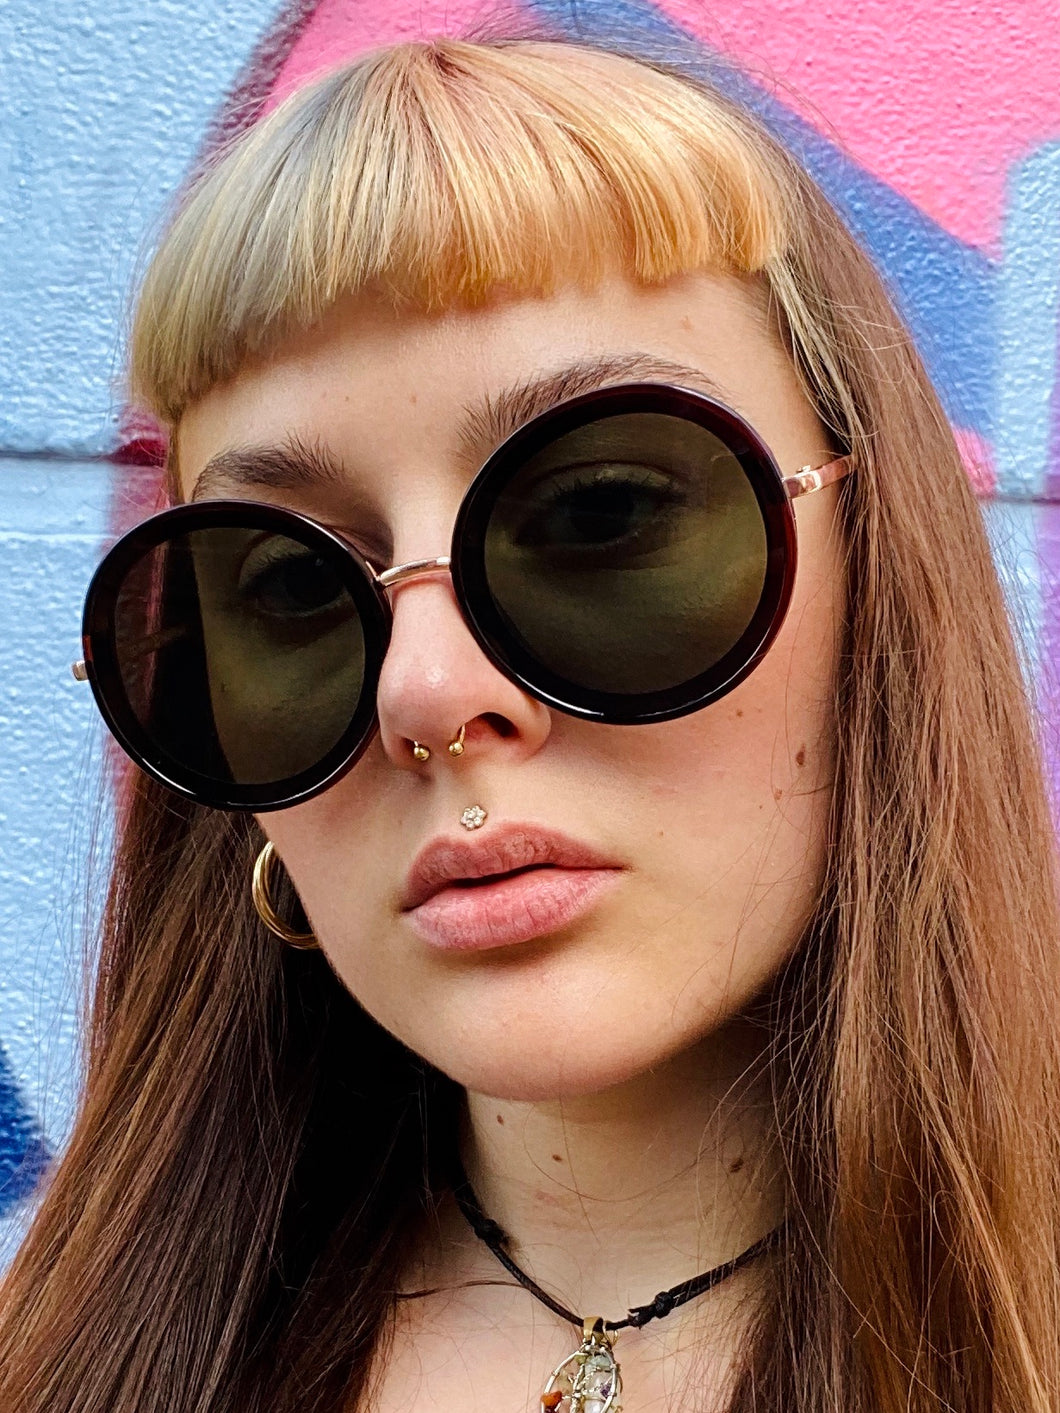 Vintage Inspired Sunglasses Big Round Shape in Dark Brown with UV400